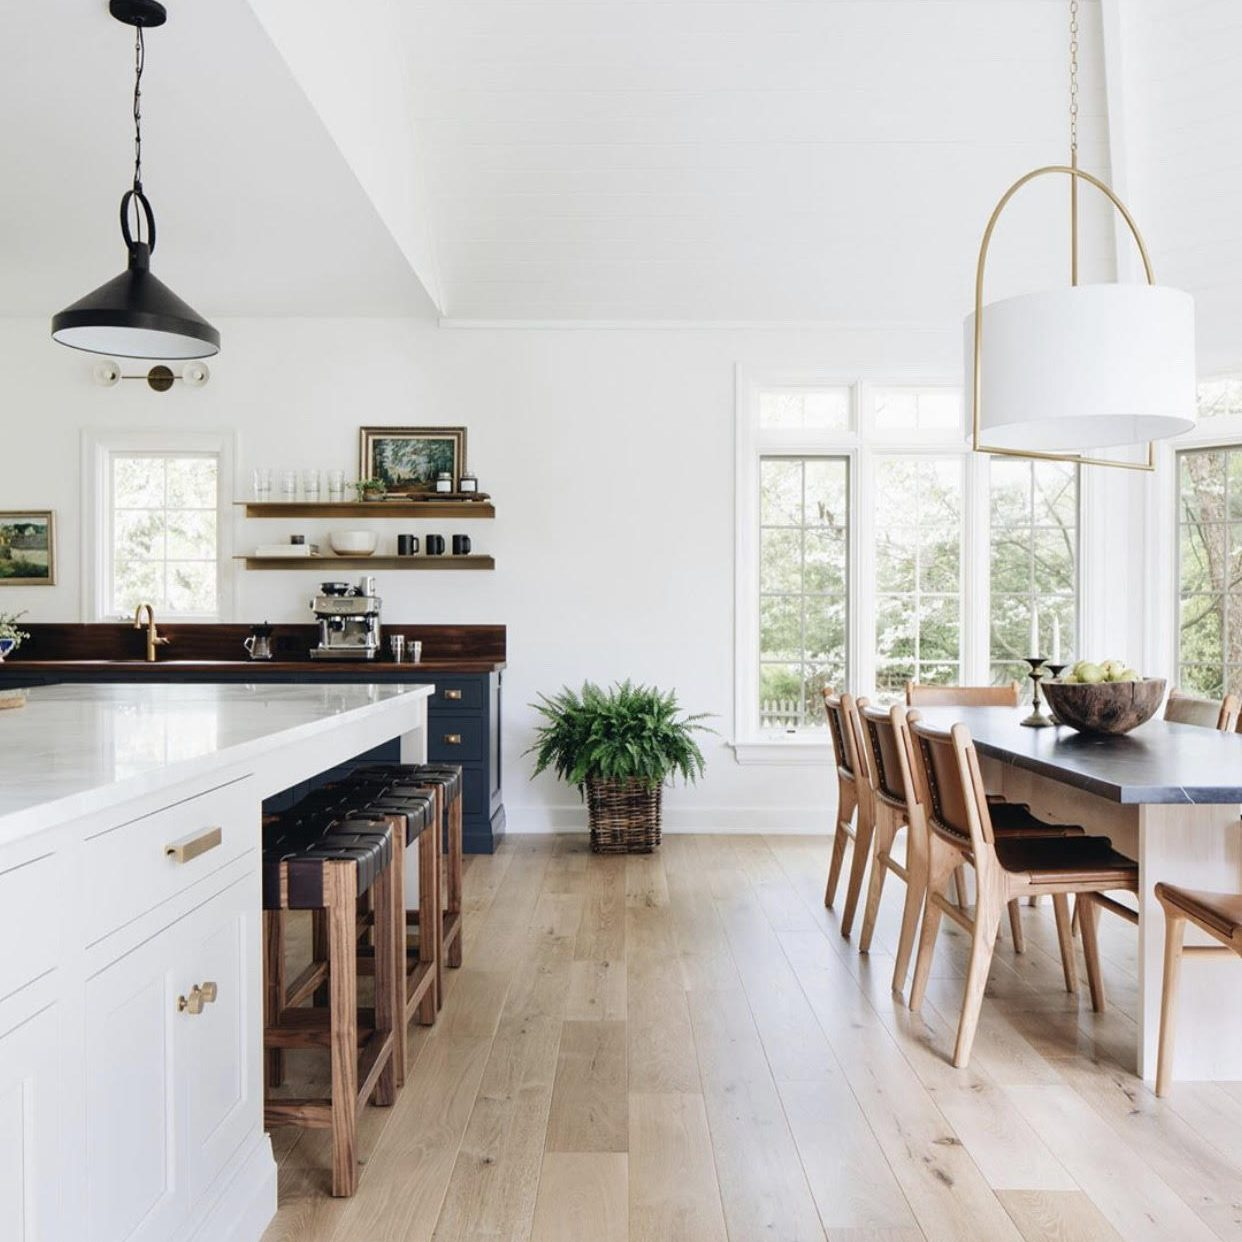 Modern Farmhouse Kitchen Makeover, Neutral Kitchen Design navy cabinets Kenowa Builders